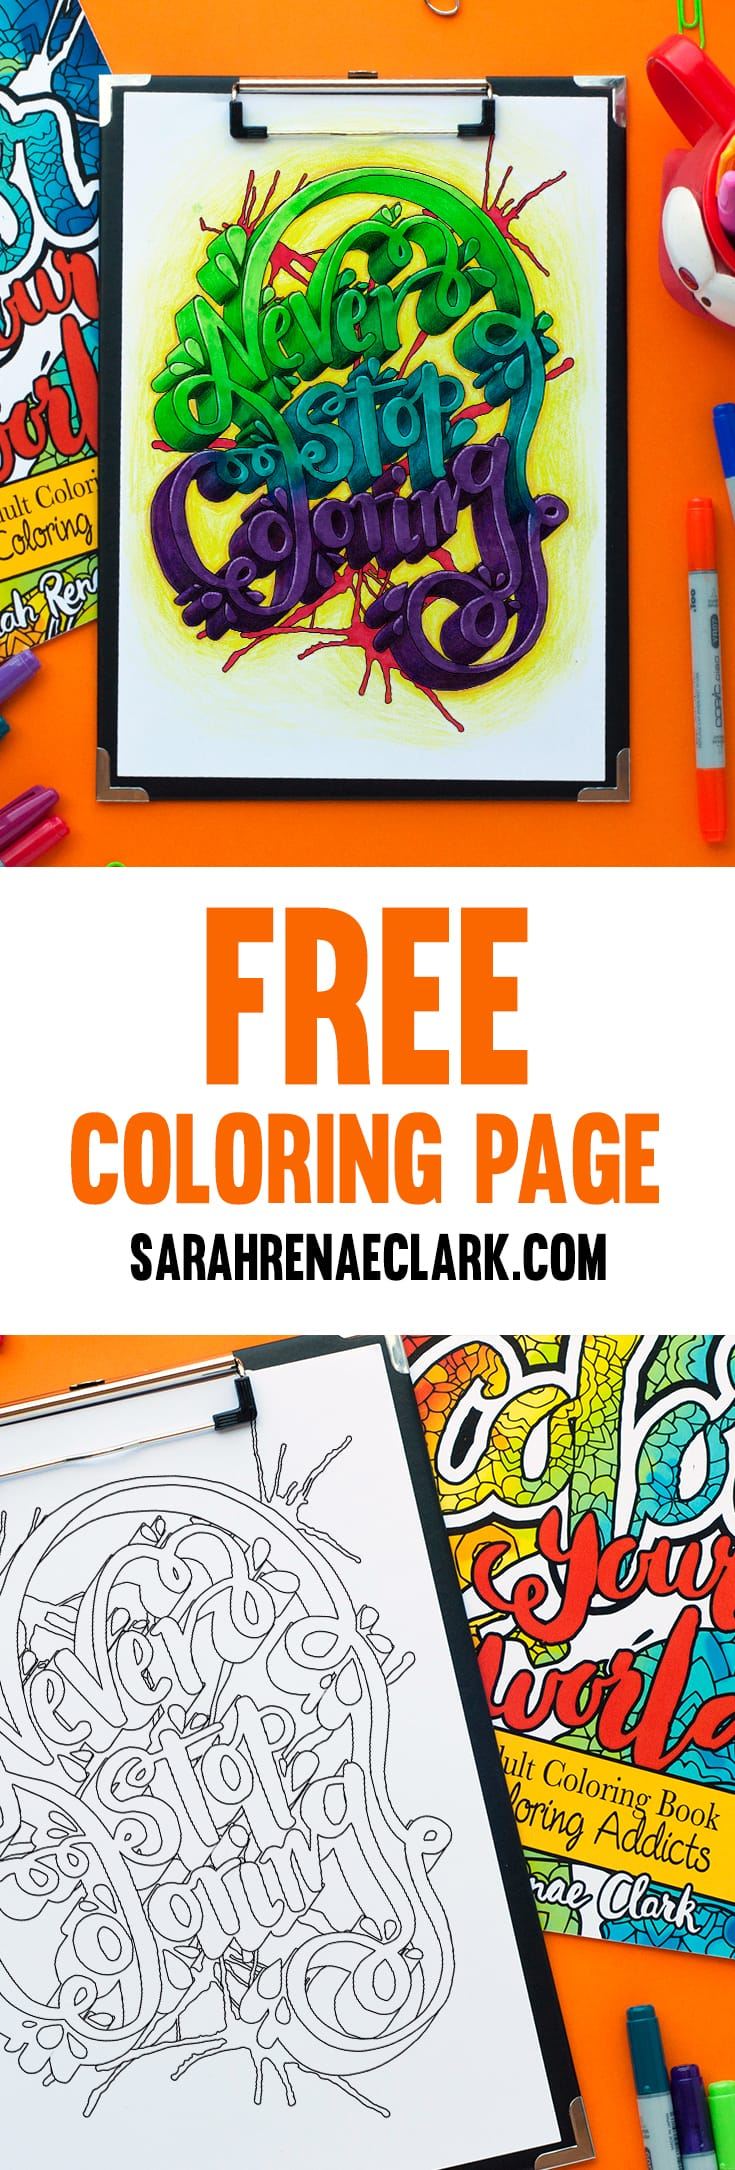 Never Stop Coloring - Free coloring page for adults | Sample adult coloring page from